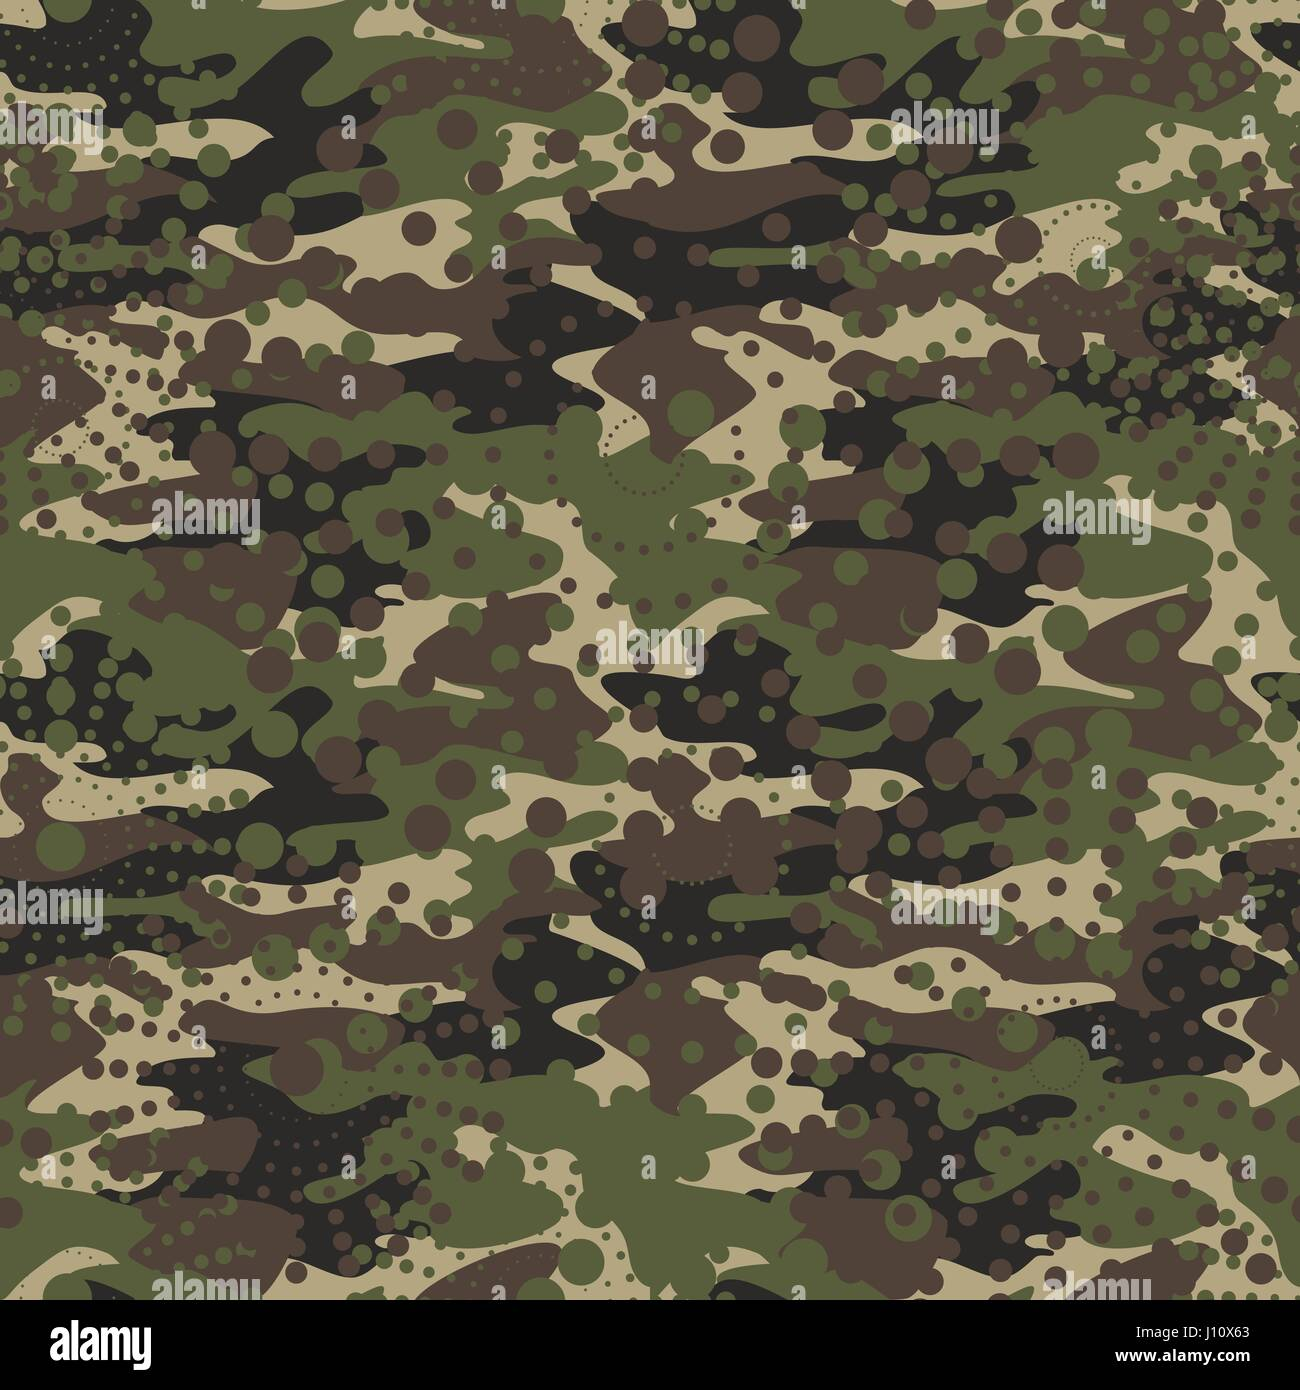 Camouflage and halftone pattern background seamless, mask clothing print. Repeatable camo vector. Dazzle paint masking - Stock Image